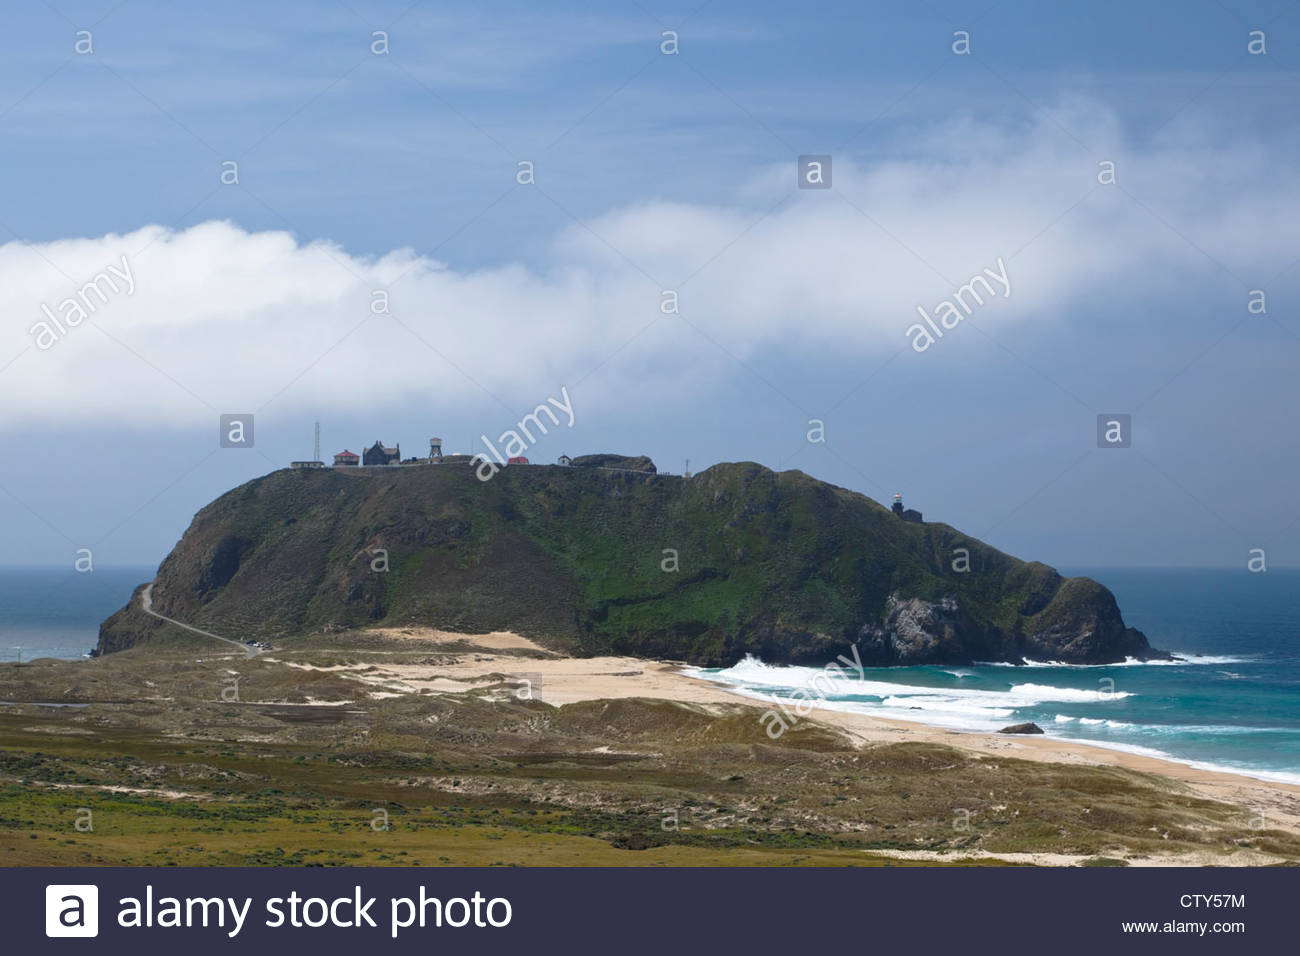 Scenic View of Point Sur Lighthouse from Pacific Coast Highway (U.S. Hwy 1), Point Sur, California - Stock Image